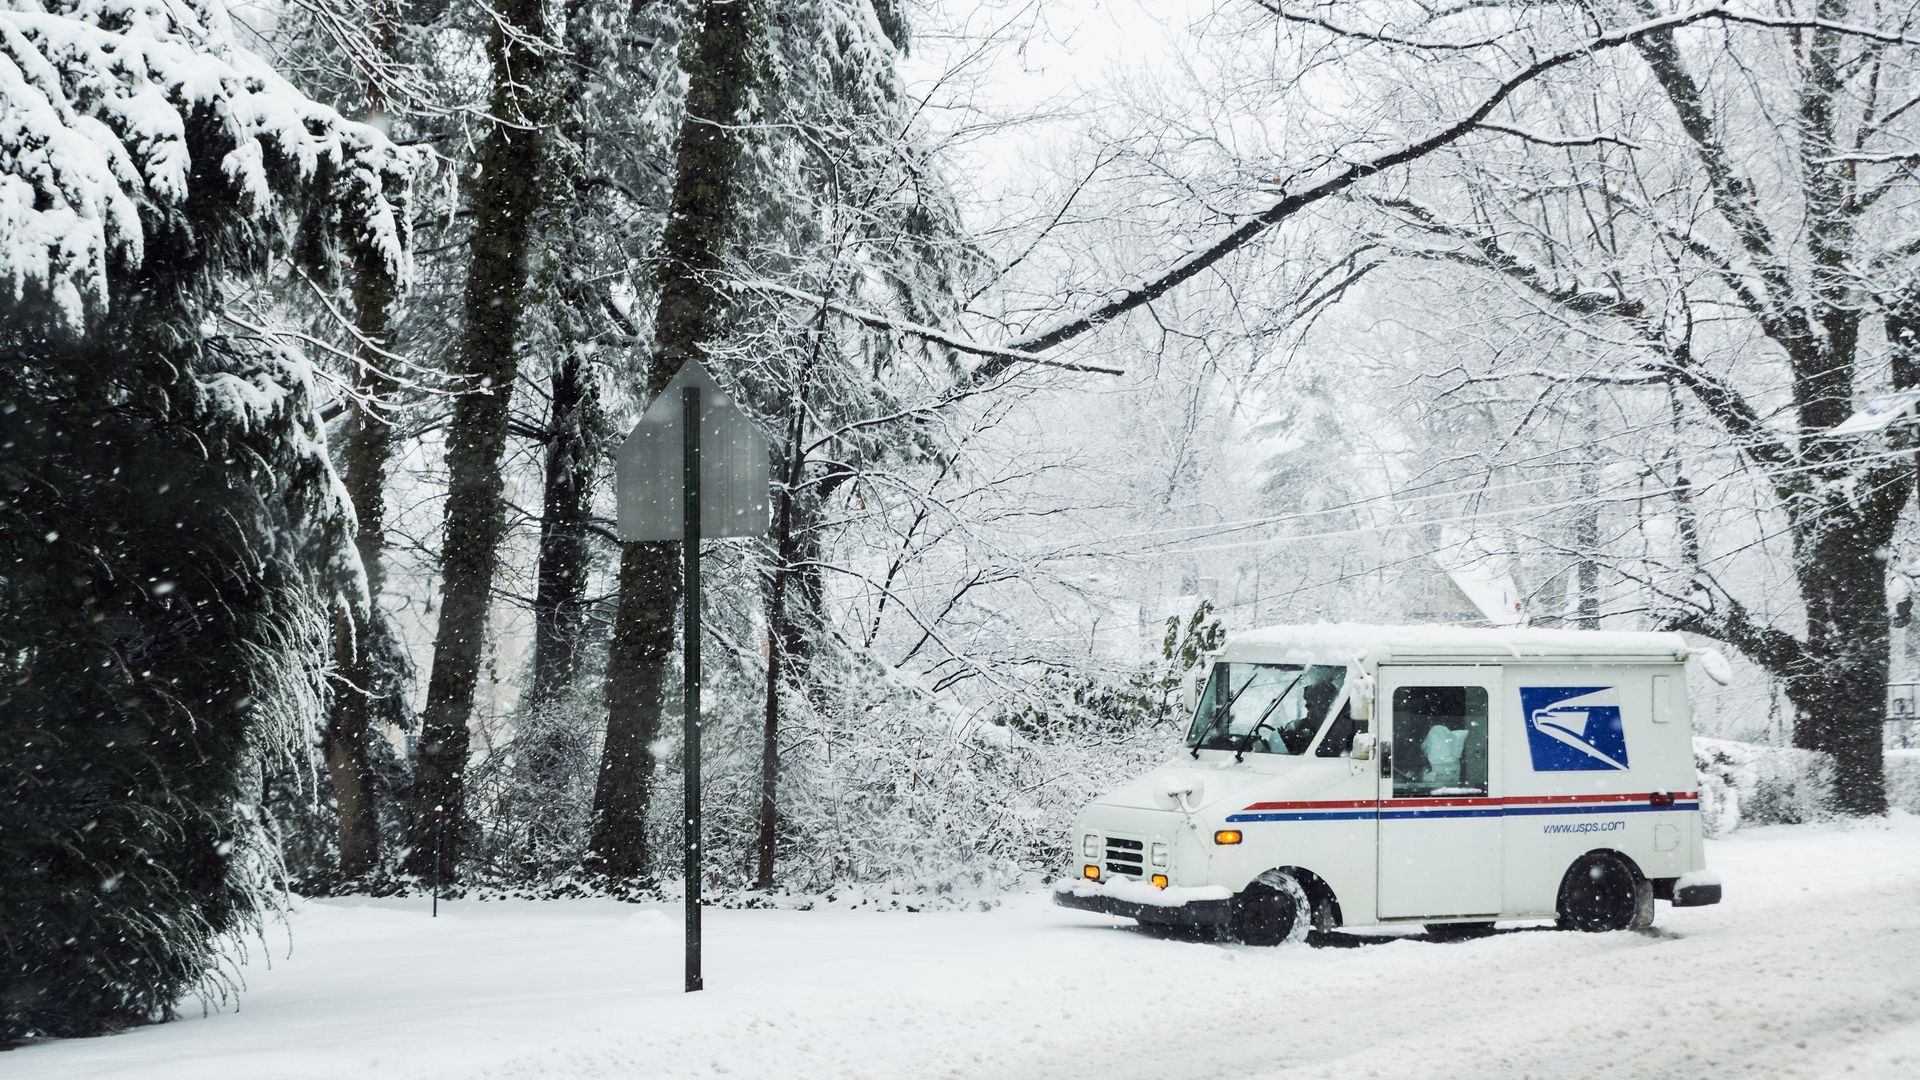 Mail delivery truck in the snow